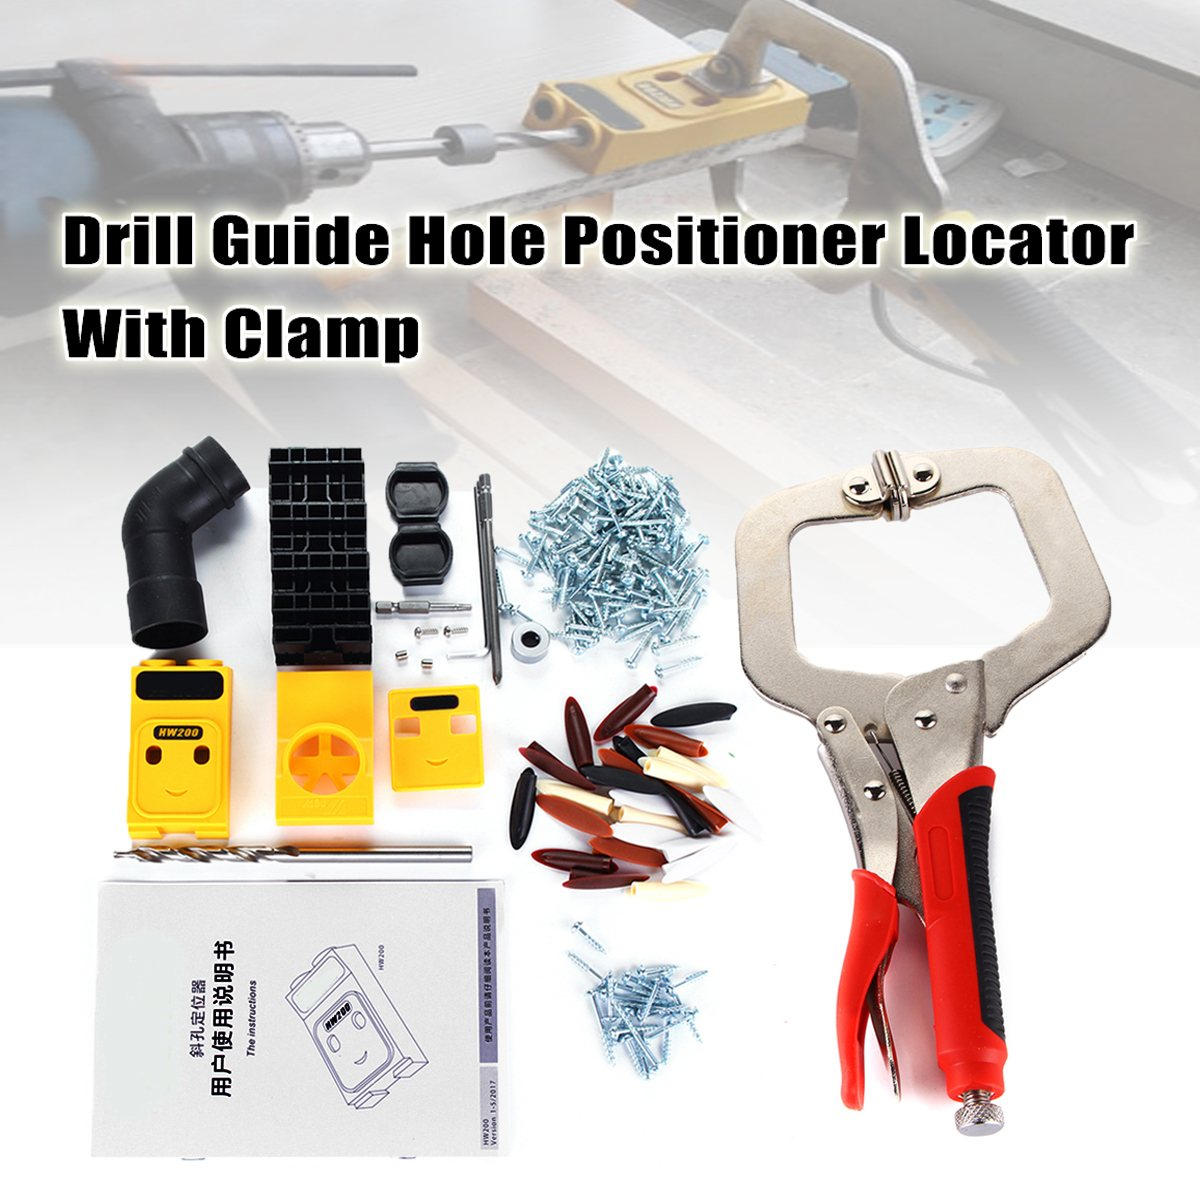 New Pocket-Hole Jig Drill Guide Hole Positioner Locator with Clamp Woodworking Tool Kit Suitable for Joining Panel Furniture new pocket hole jig drill guide hole positioner locator with clamp woodworking tool kit suitable for joining panel furniture